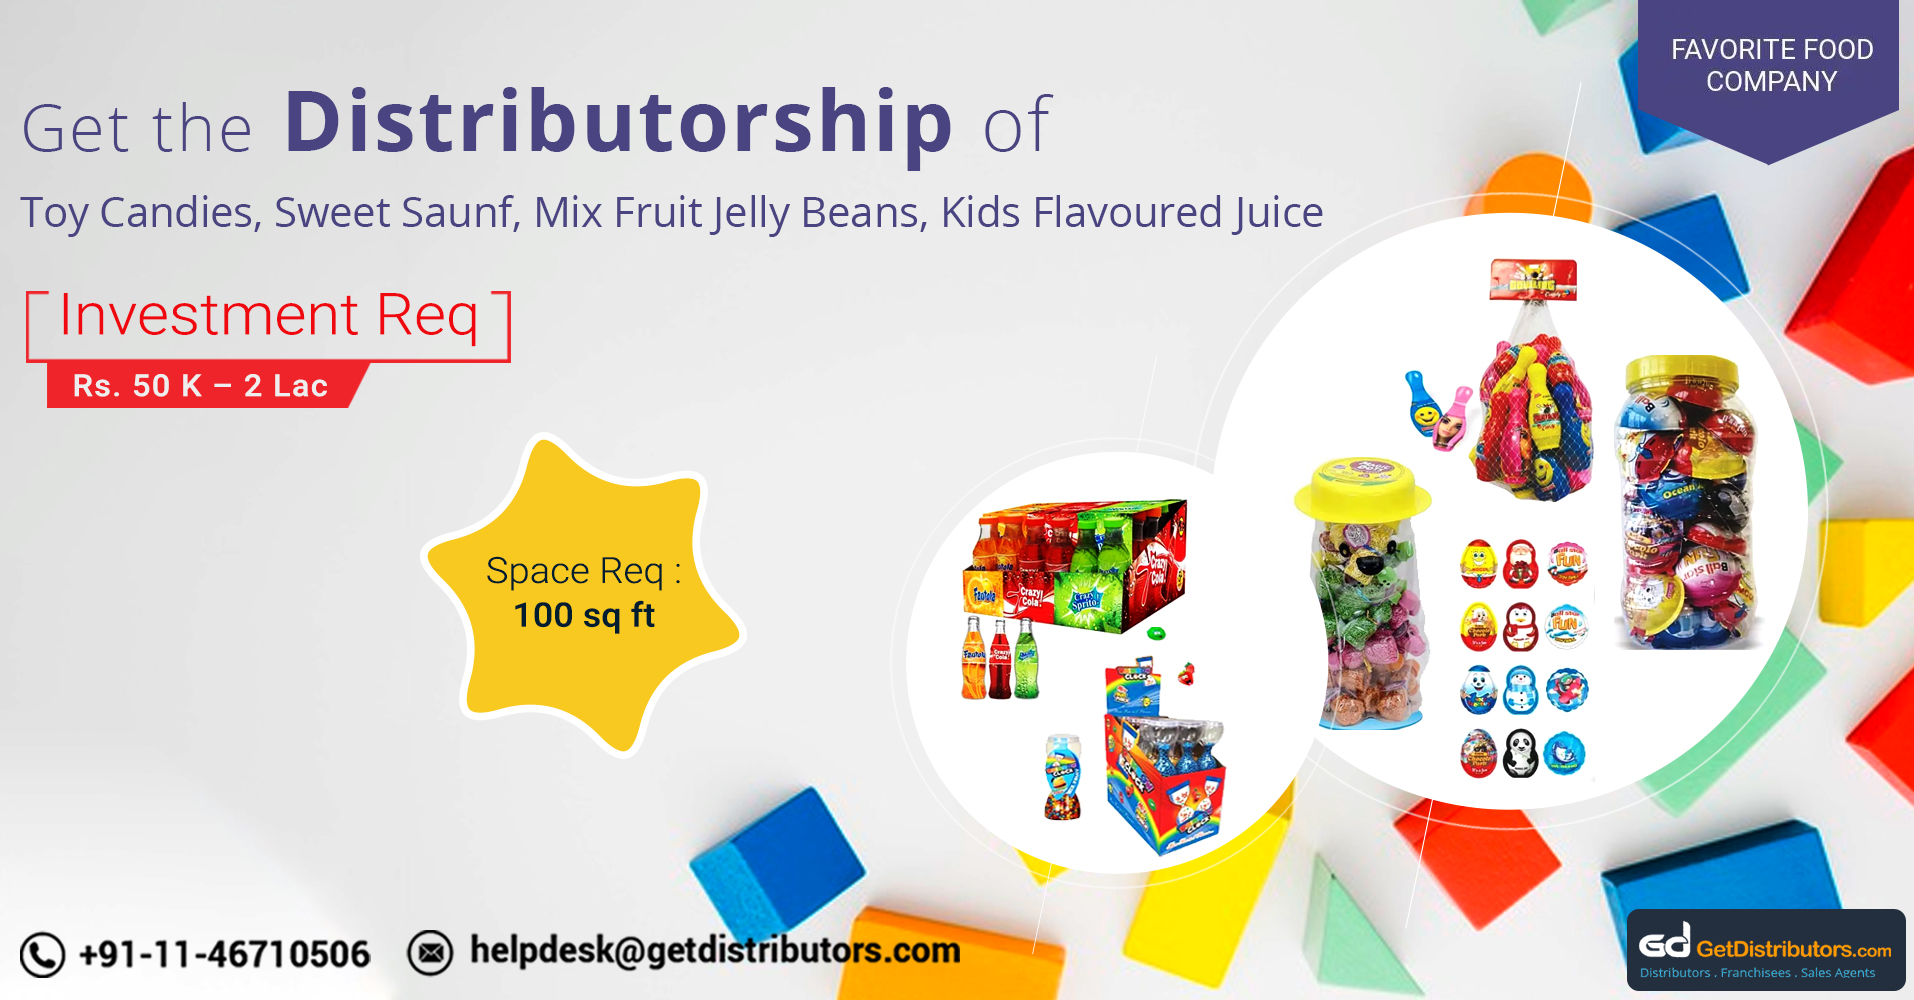 High-Quality Candies And Flavored Juices At Affordable Prices